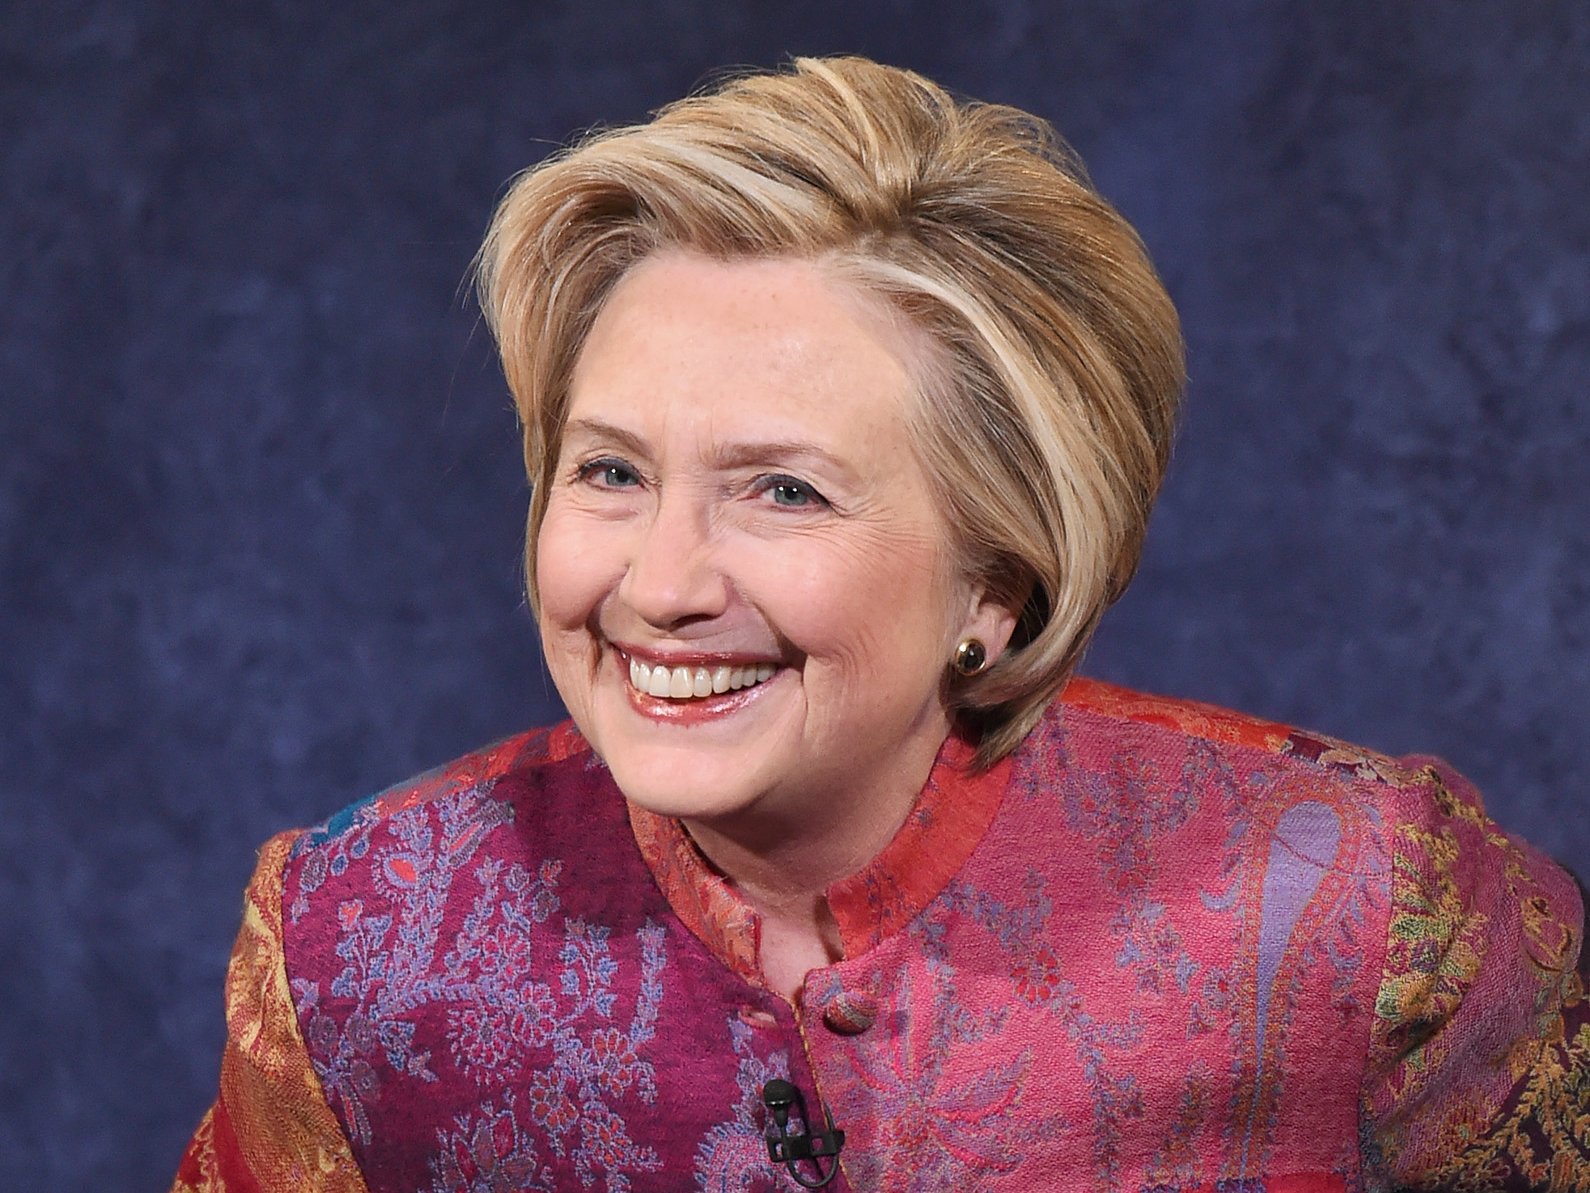 Hillary Clinton Edits Twitter Bio, Removes 'Wife' after ... Hillary Clinton